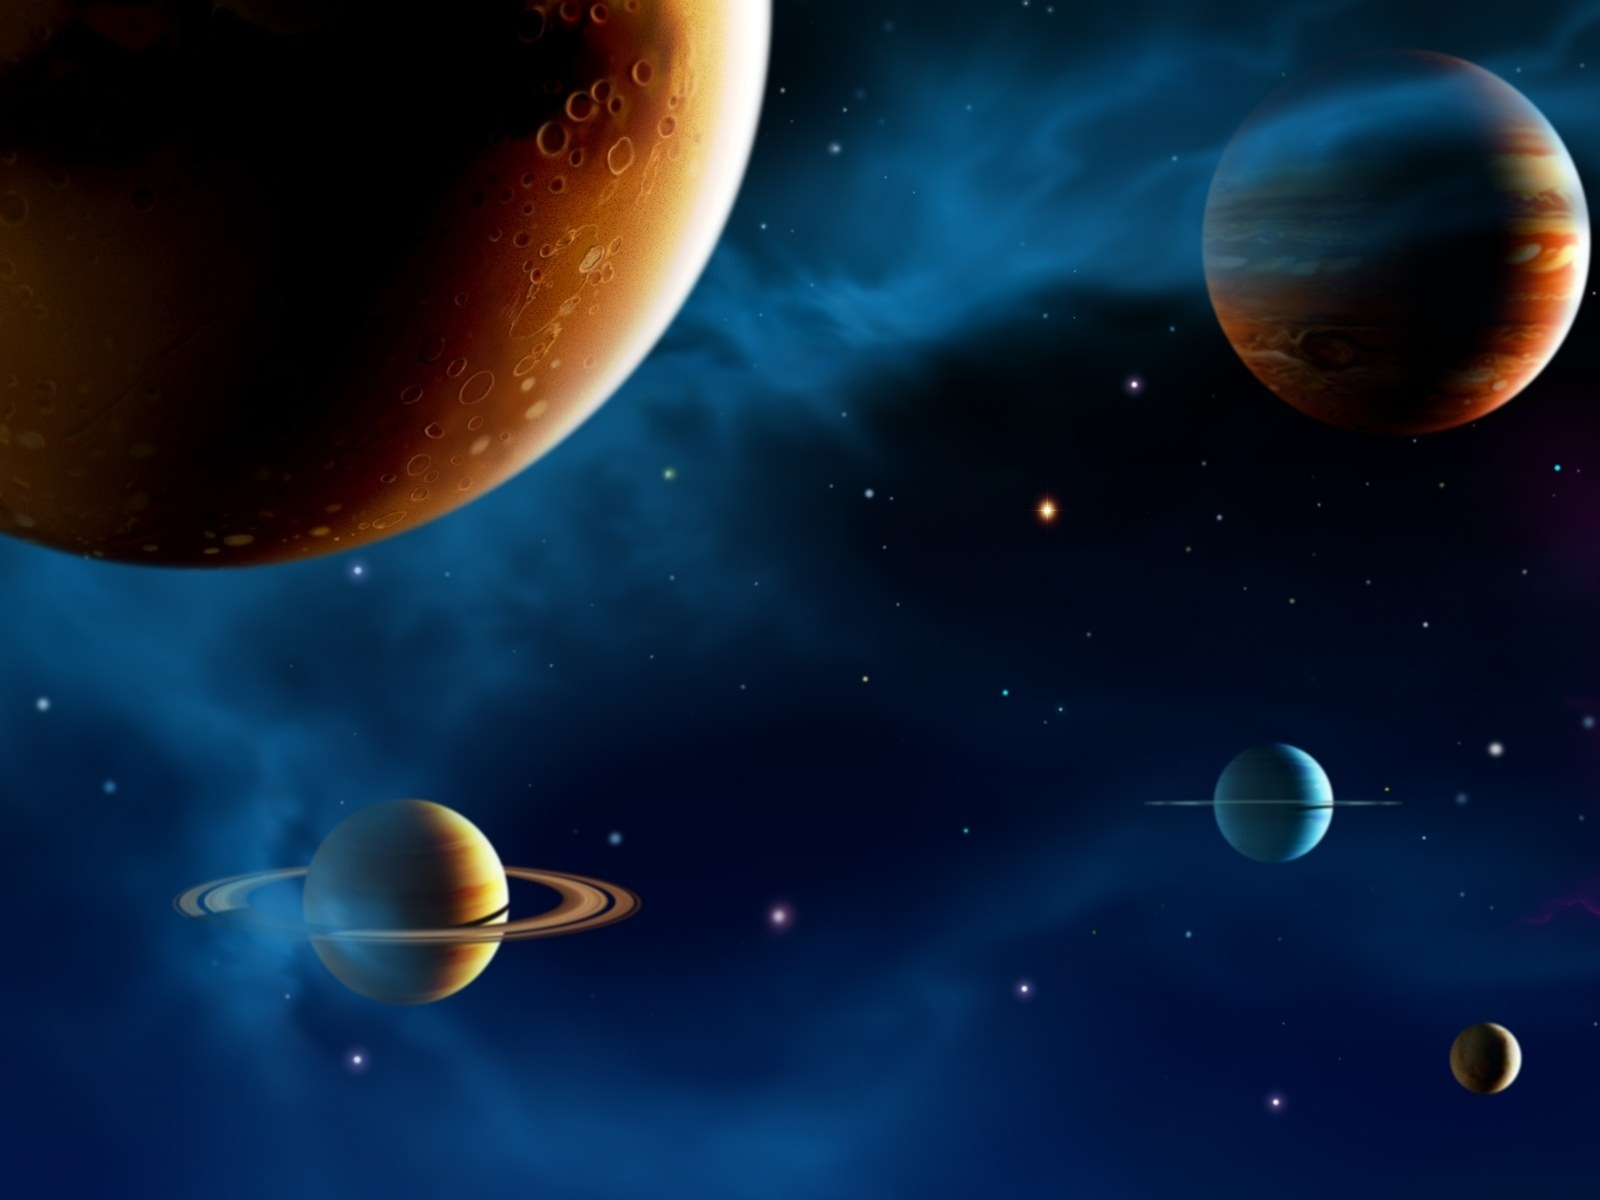 Dragon Ball Wallpapers 3d 14 Cg Illustrator Space Planet Universe The Universe Stars